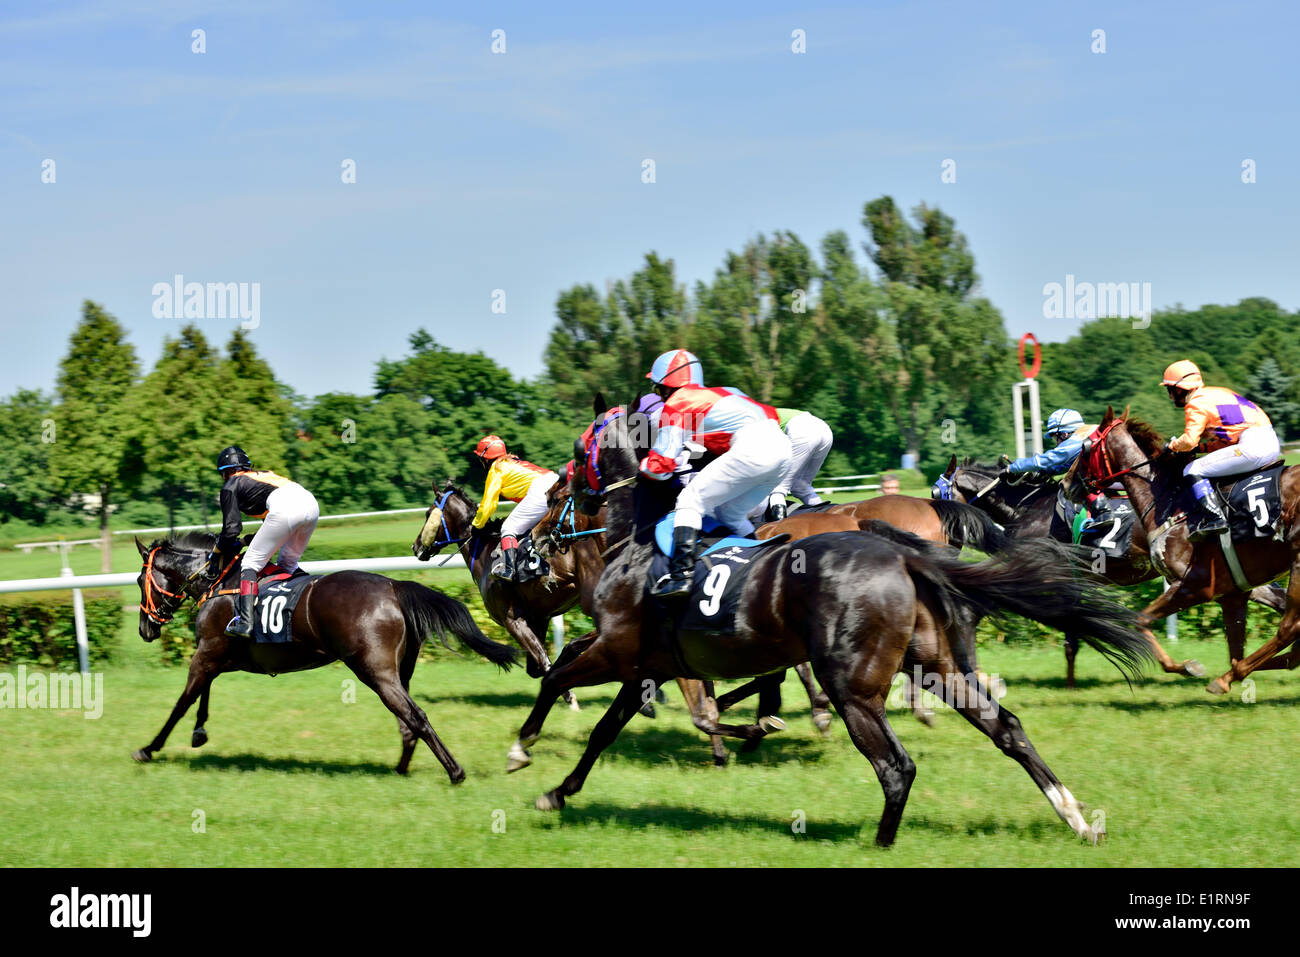 Wroclaw, Poland. 9th June, 2014. President's Day at the track Partenice, race for 3-year-old horses only group III in Wroclaw on Juni 8, 2014. Race wins horse Zucchero with the number 2. - Stock Image